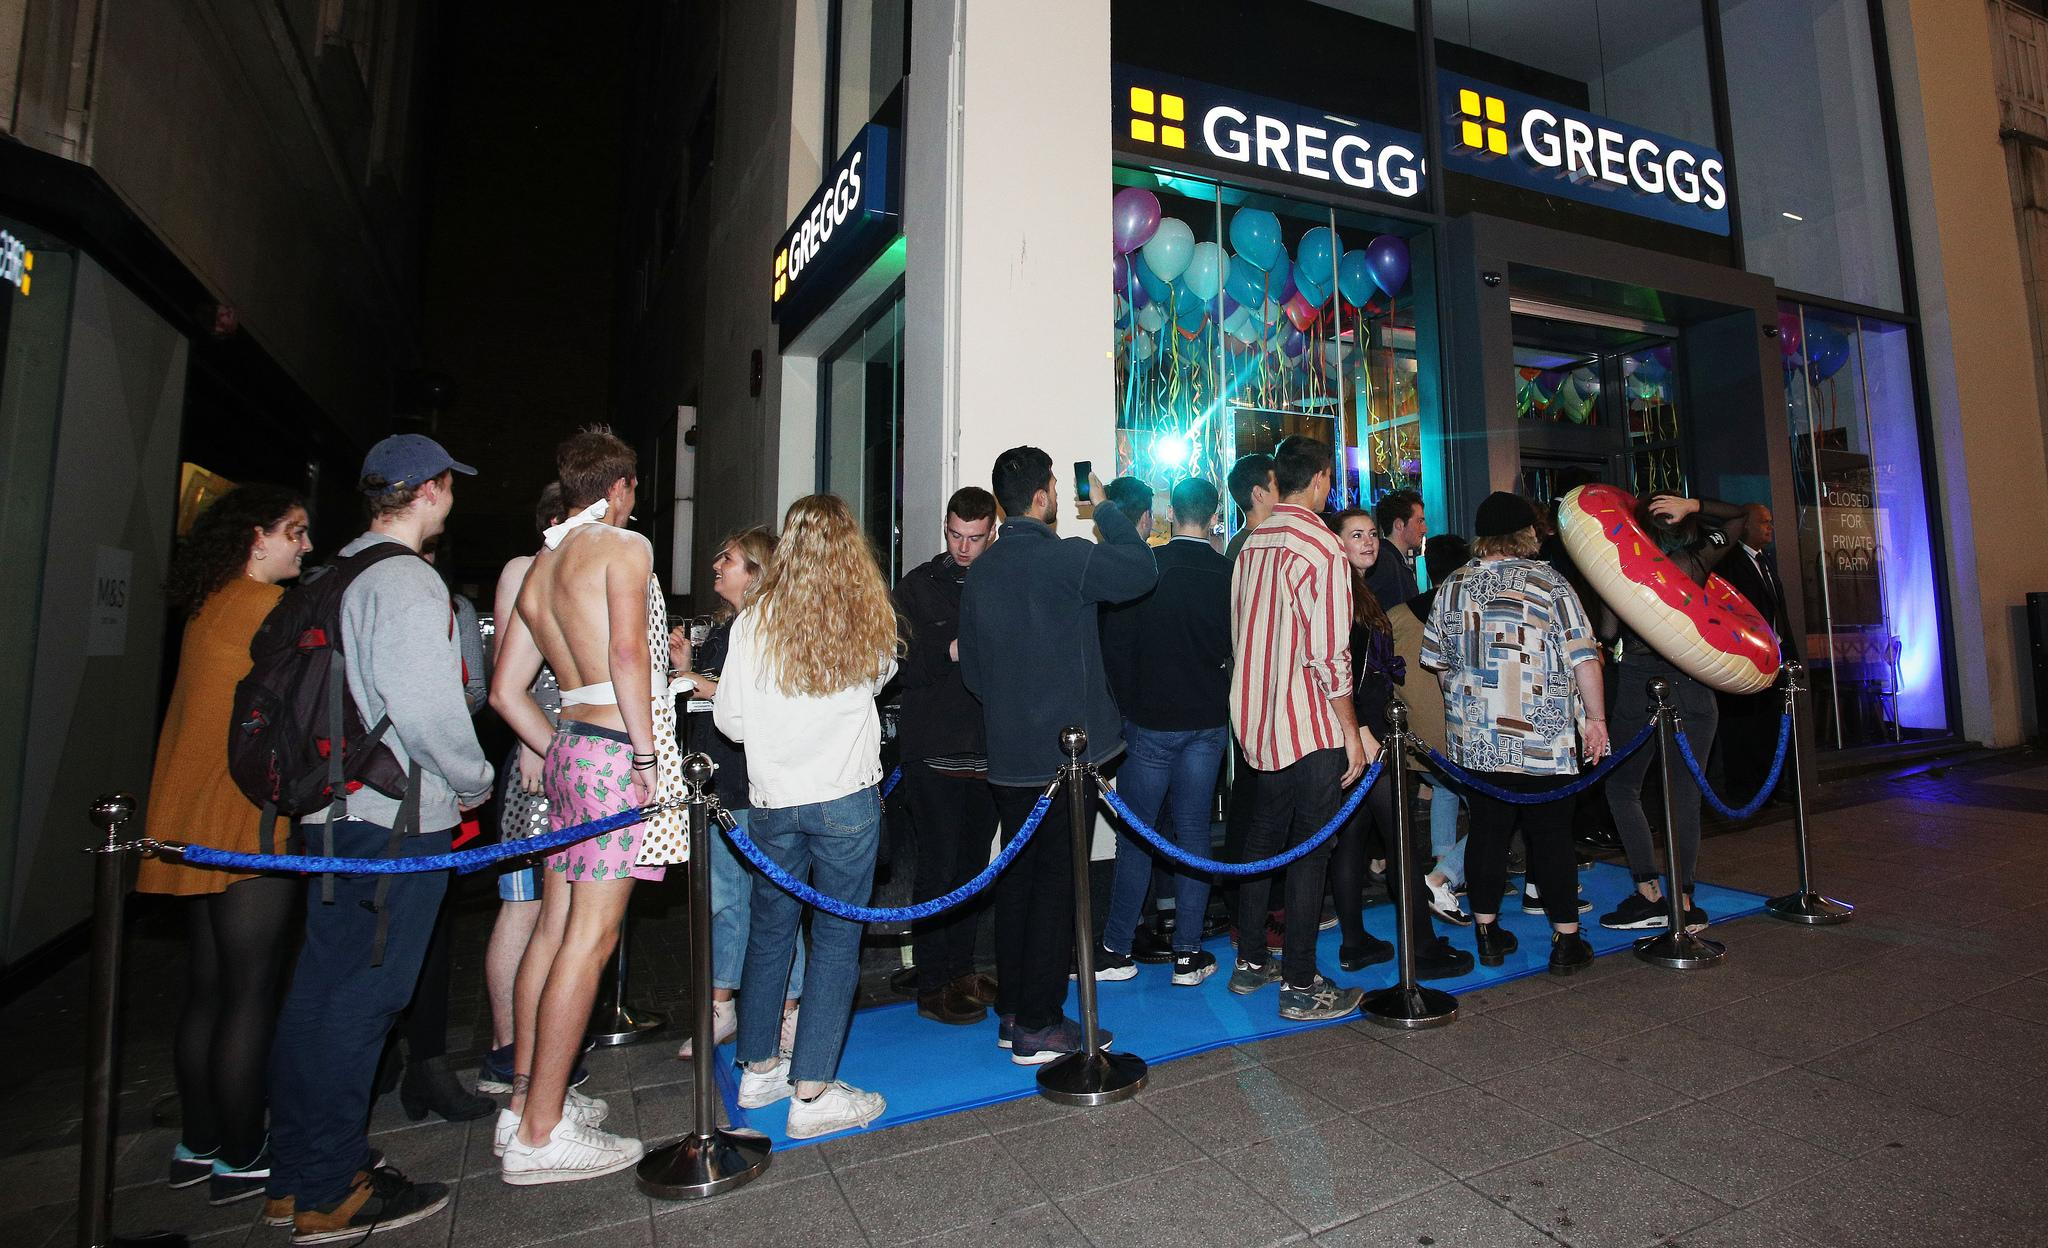 Tbf most Greggs have a queue outside of them, just not normally at night